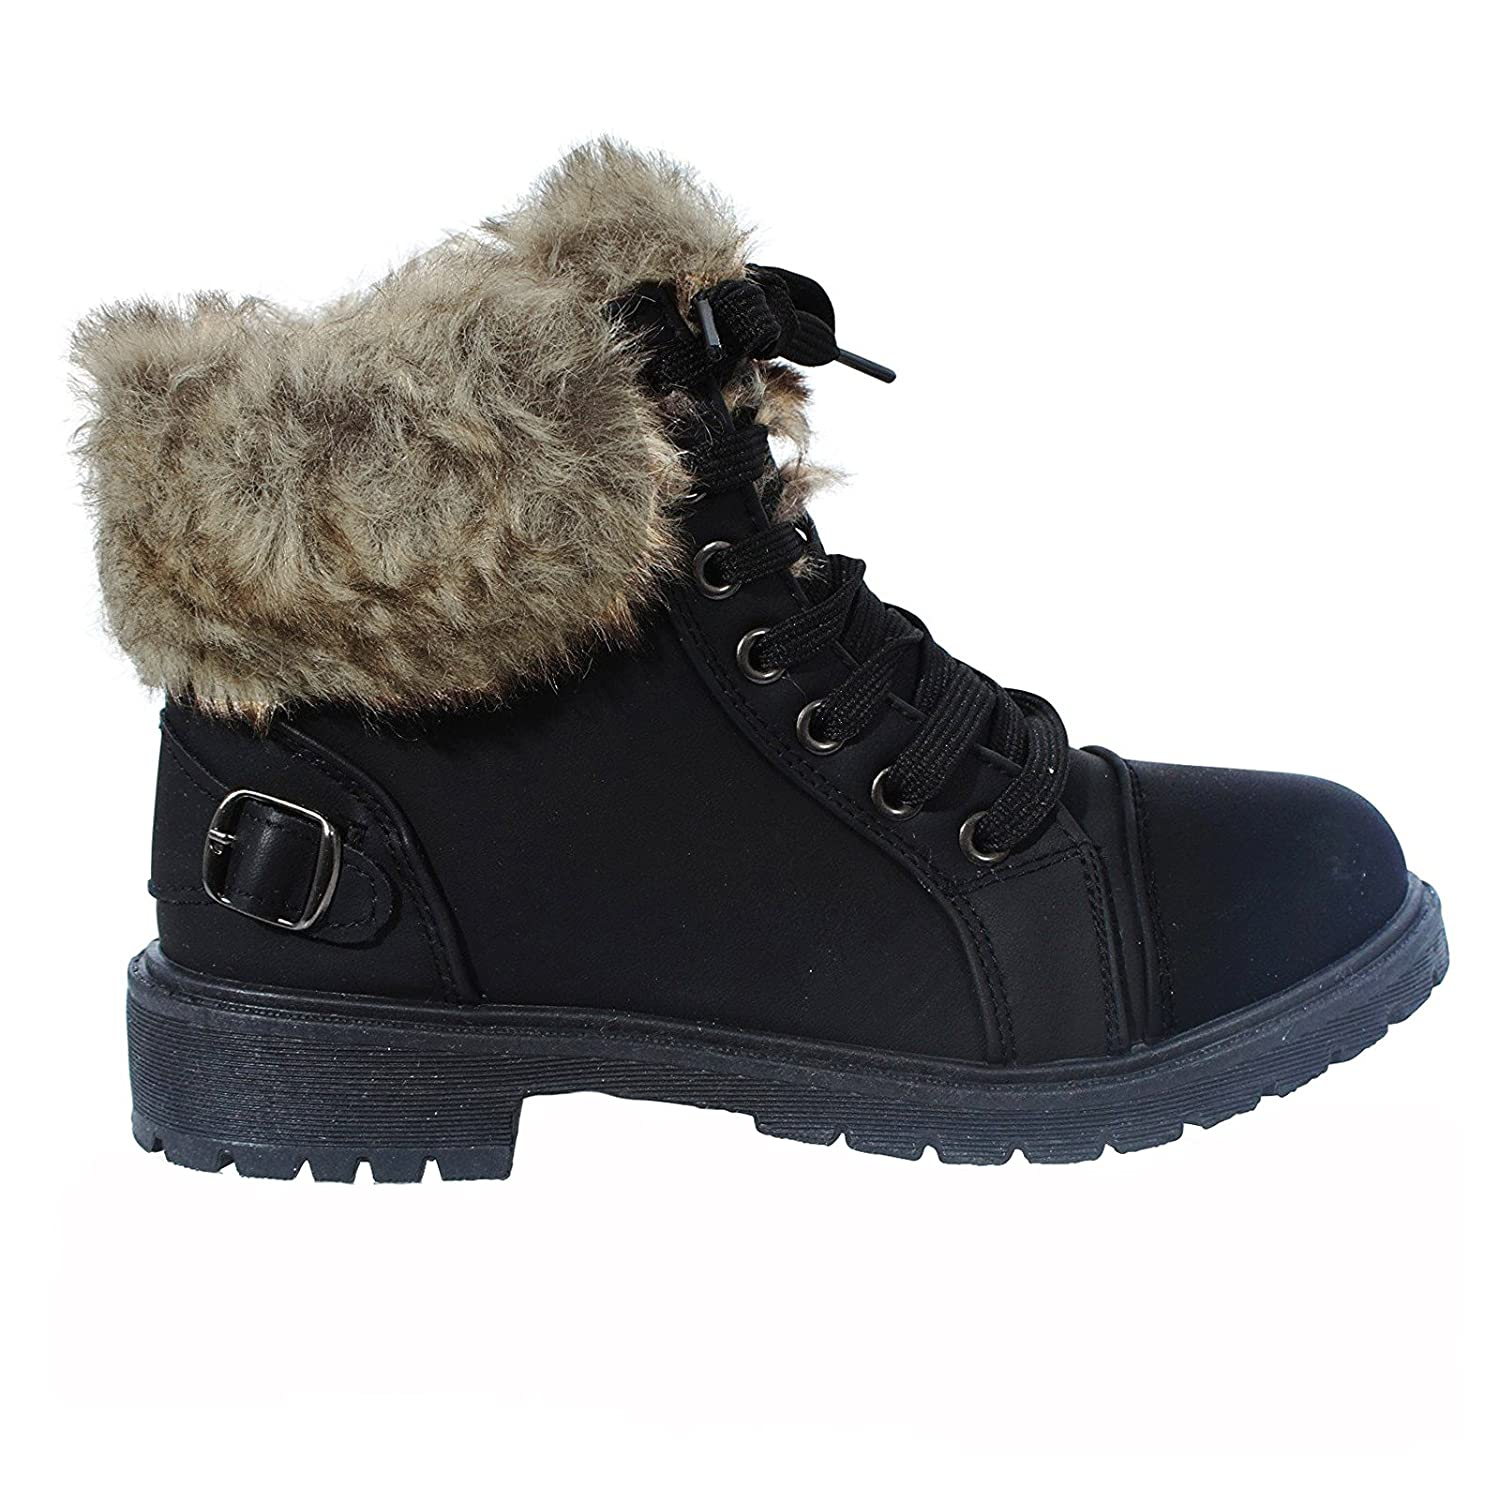 93c69133d06 WOMENS FAUX FUR ANKLE BOOTS LADIES LACE UP COLLAR FUR LINED WINTER WARM LADIES  ANKLE BOOT TRAINER SIZE 3-8  Amazon.co.uk  Shoes   Bags